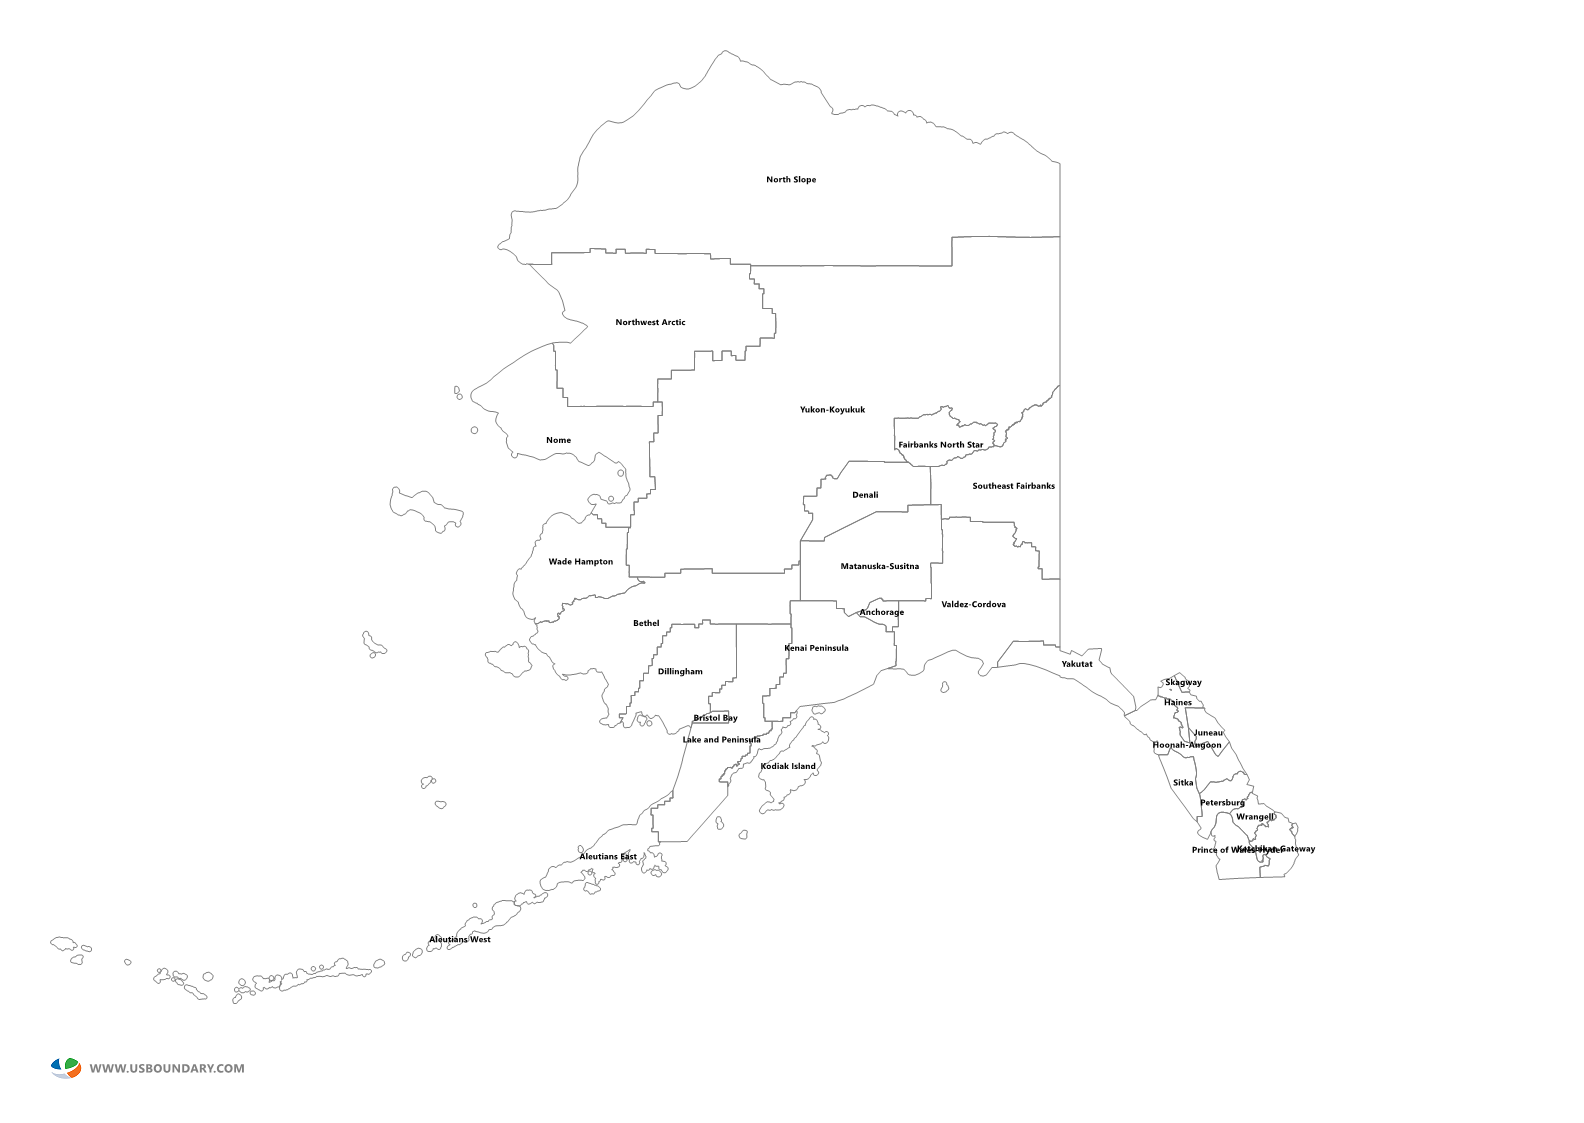 State Counties Maps Download - Alaska county map